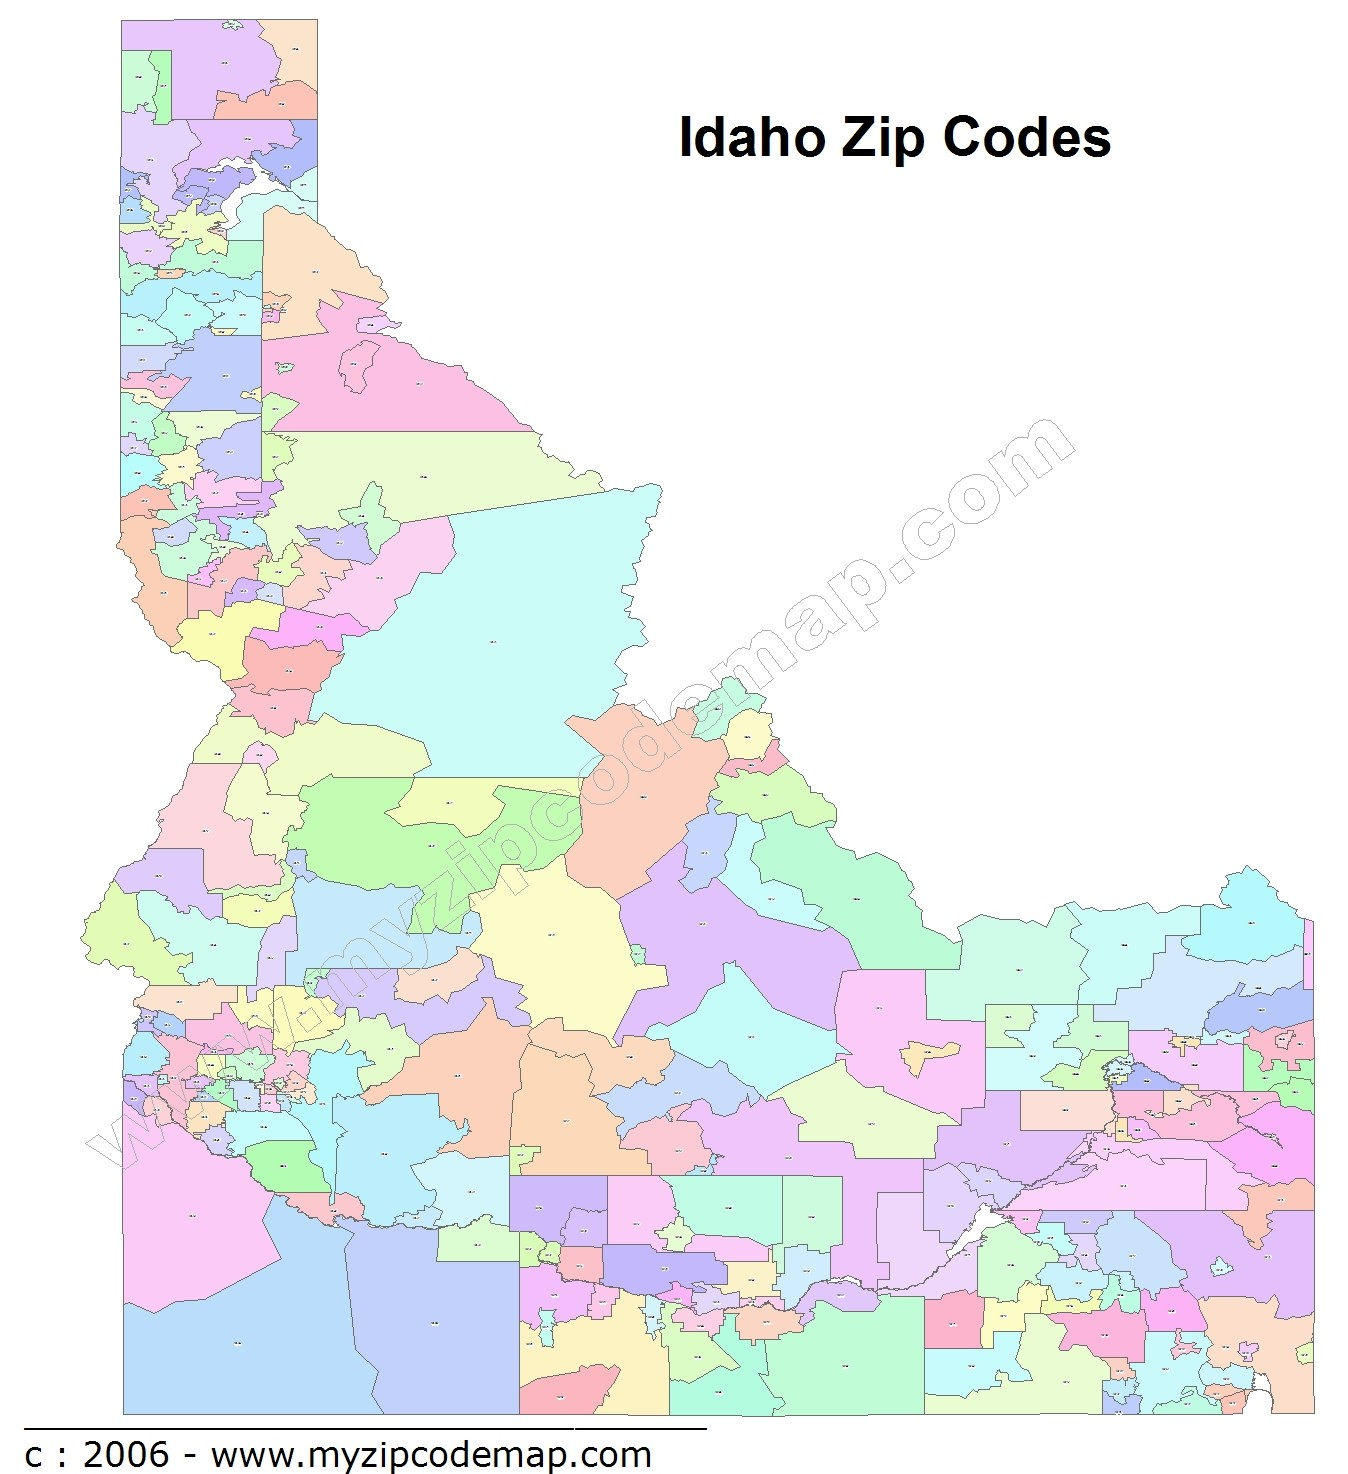 Idaho (ID) Zip Code Map